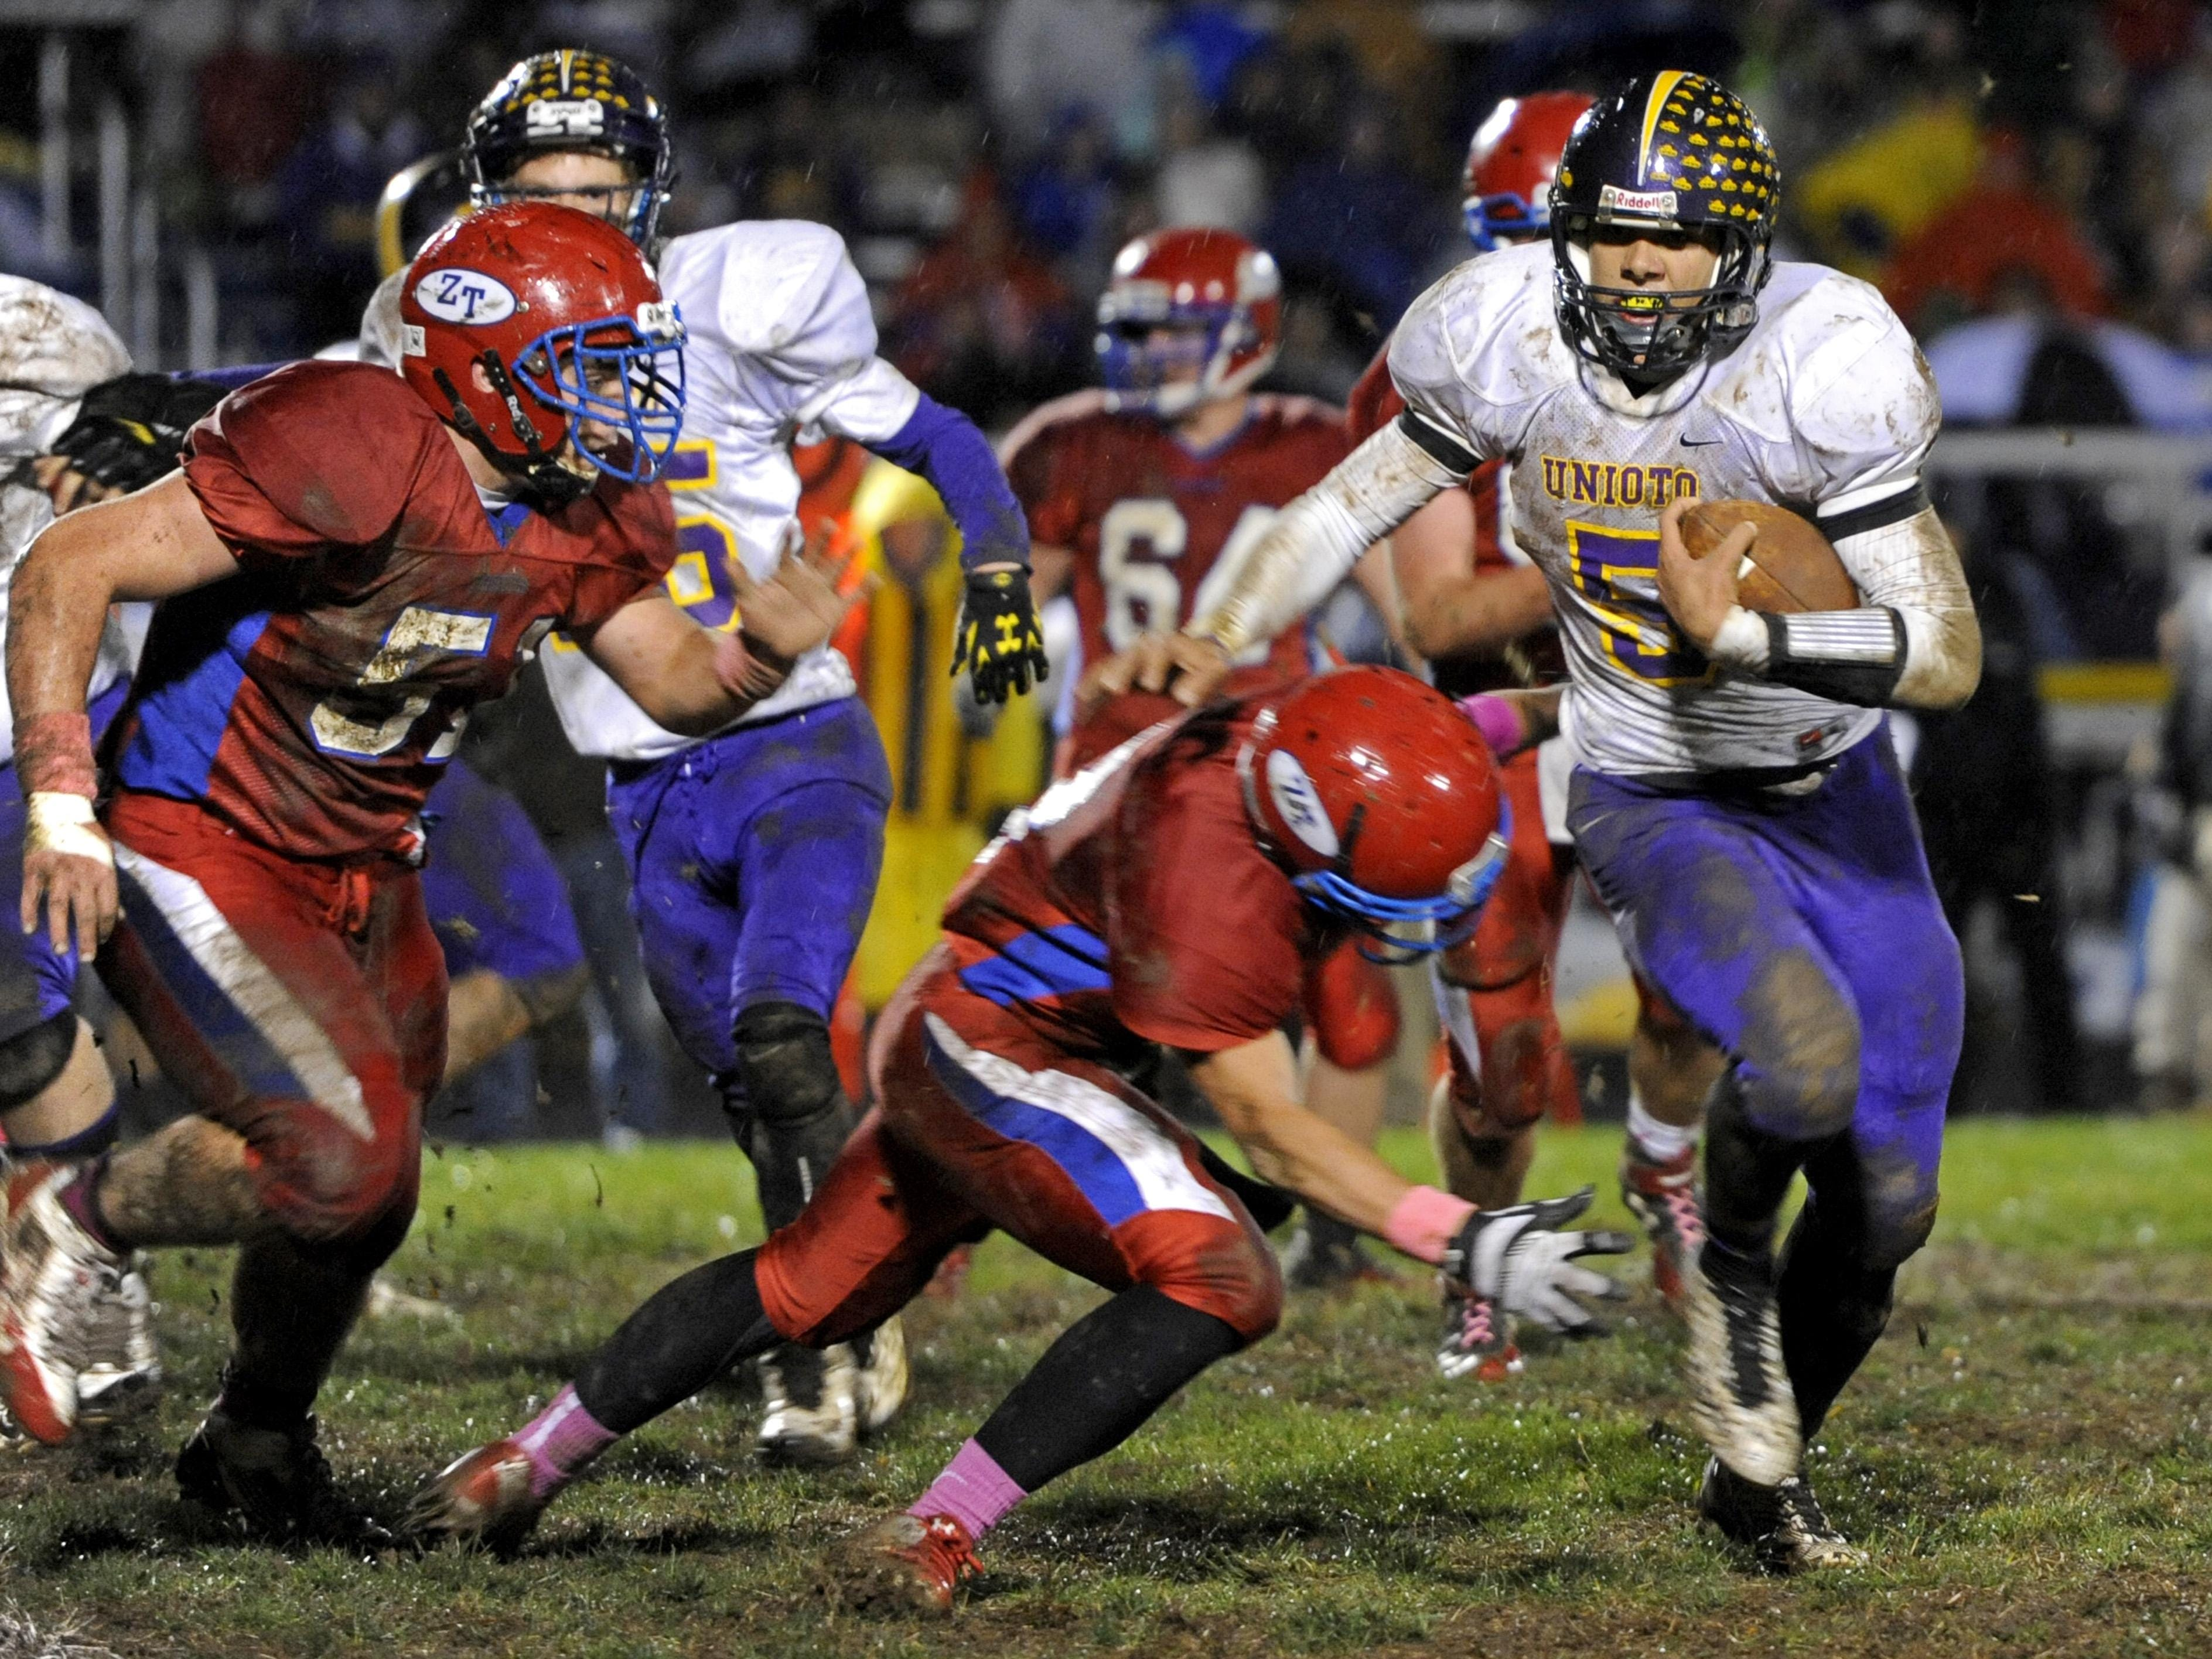 Erique Hosley carries the ball against Zane Trace during the 2014 season. Hosley and his teammates will be under the direction of new head football coach Jeff Metzler in 2015.